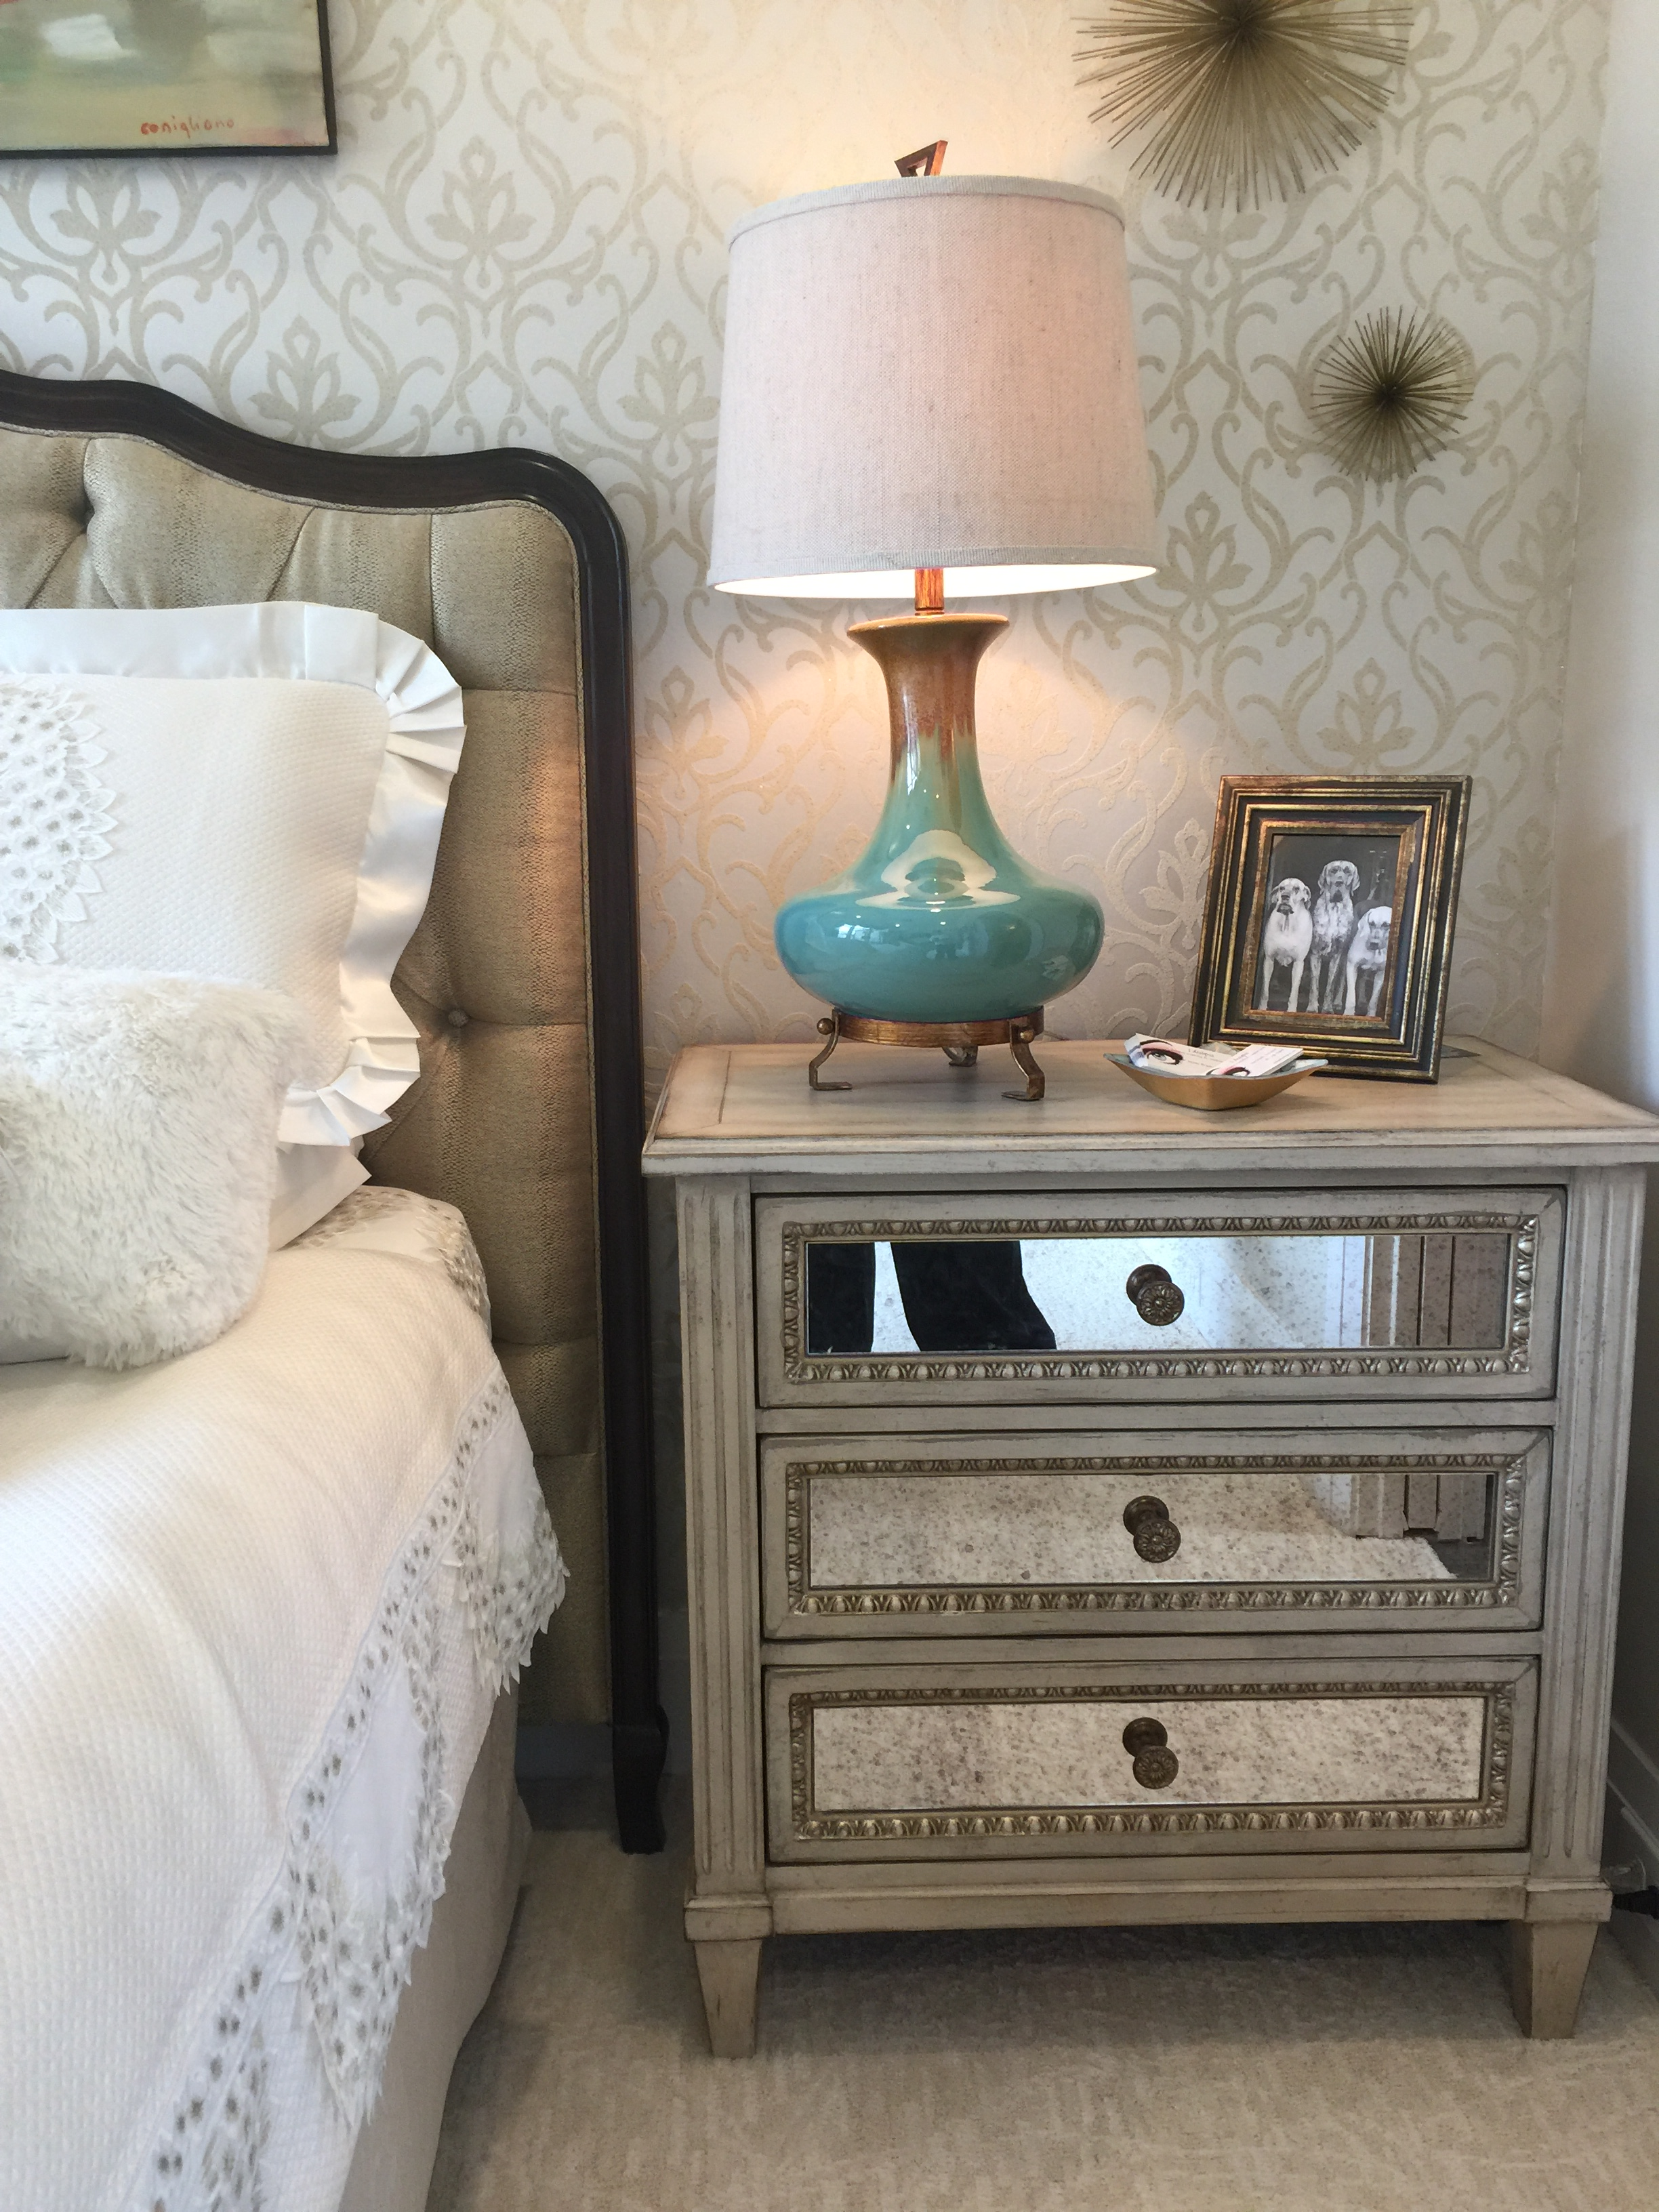 Guest house guest bedroom designed by Ida Creech and Susan Bryant